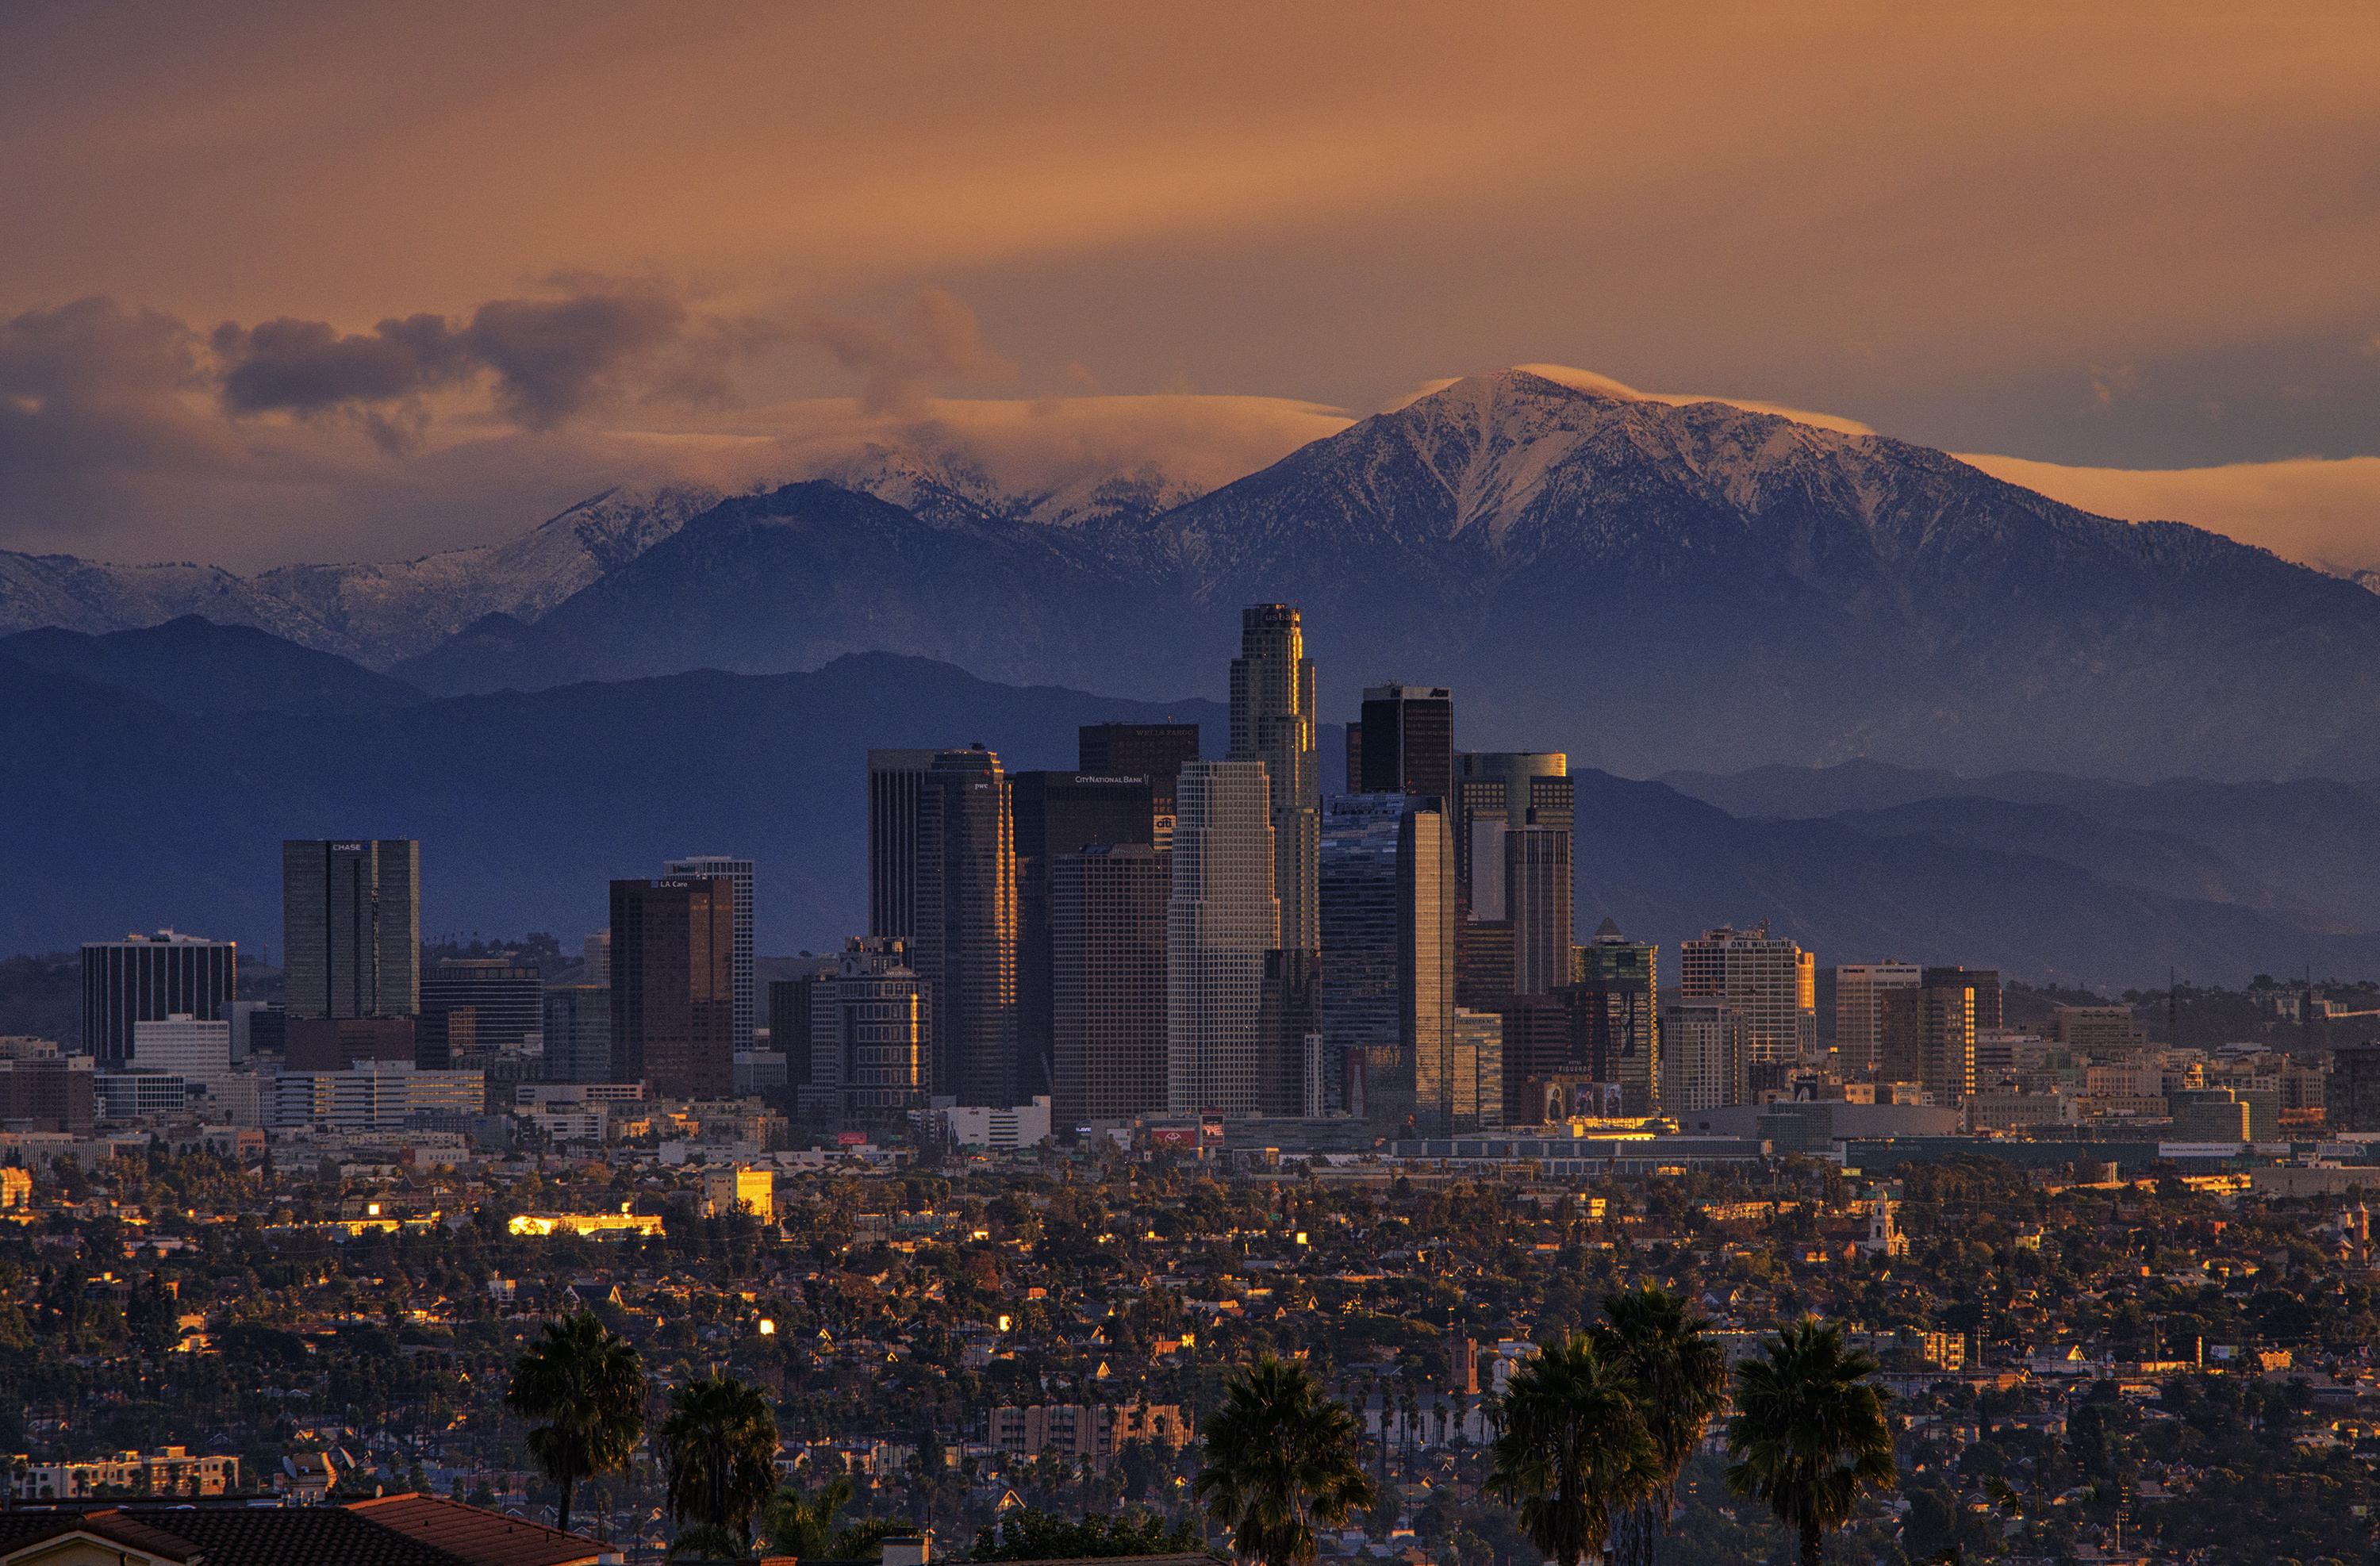 California city Los Angeles mountains wallpaper 3000x1974 228442 3000x1974